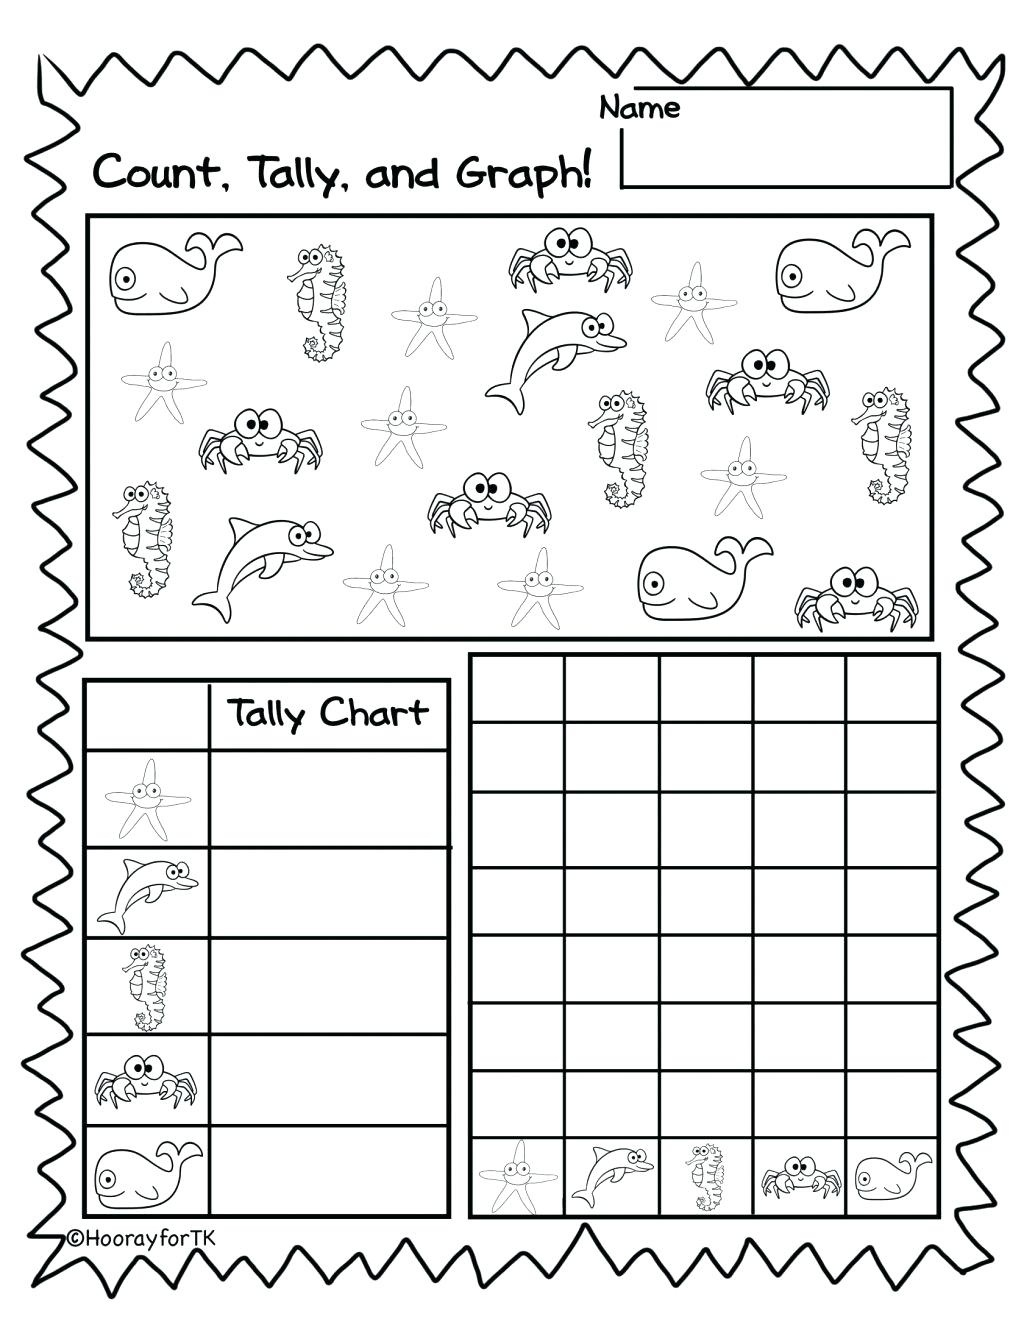 Kindergarten Graphing Worksheets Kindergarten Christmas Graphing - Free Printable Graphs For Kindergarten